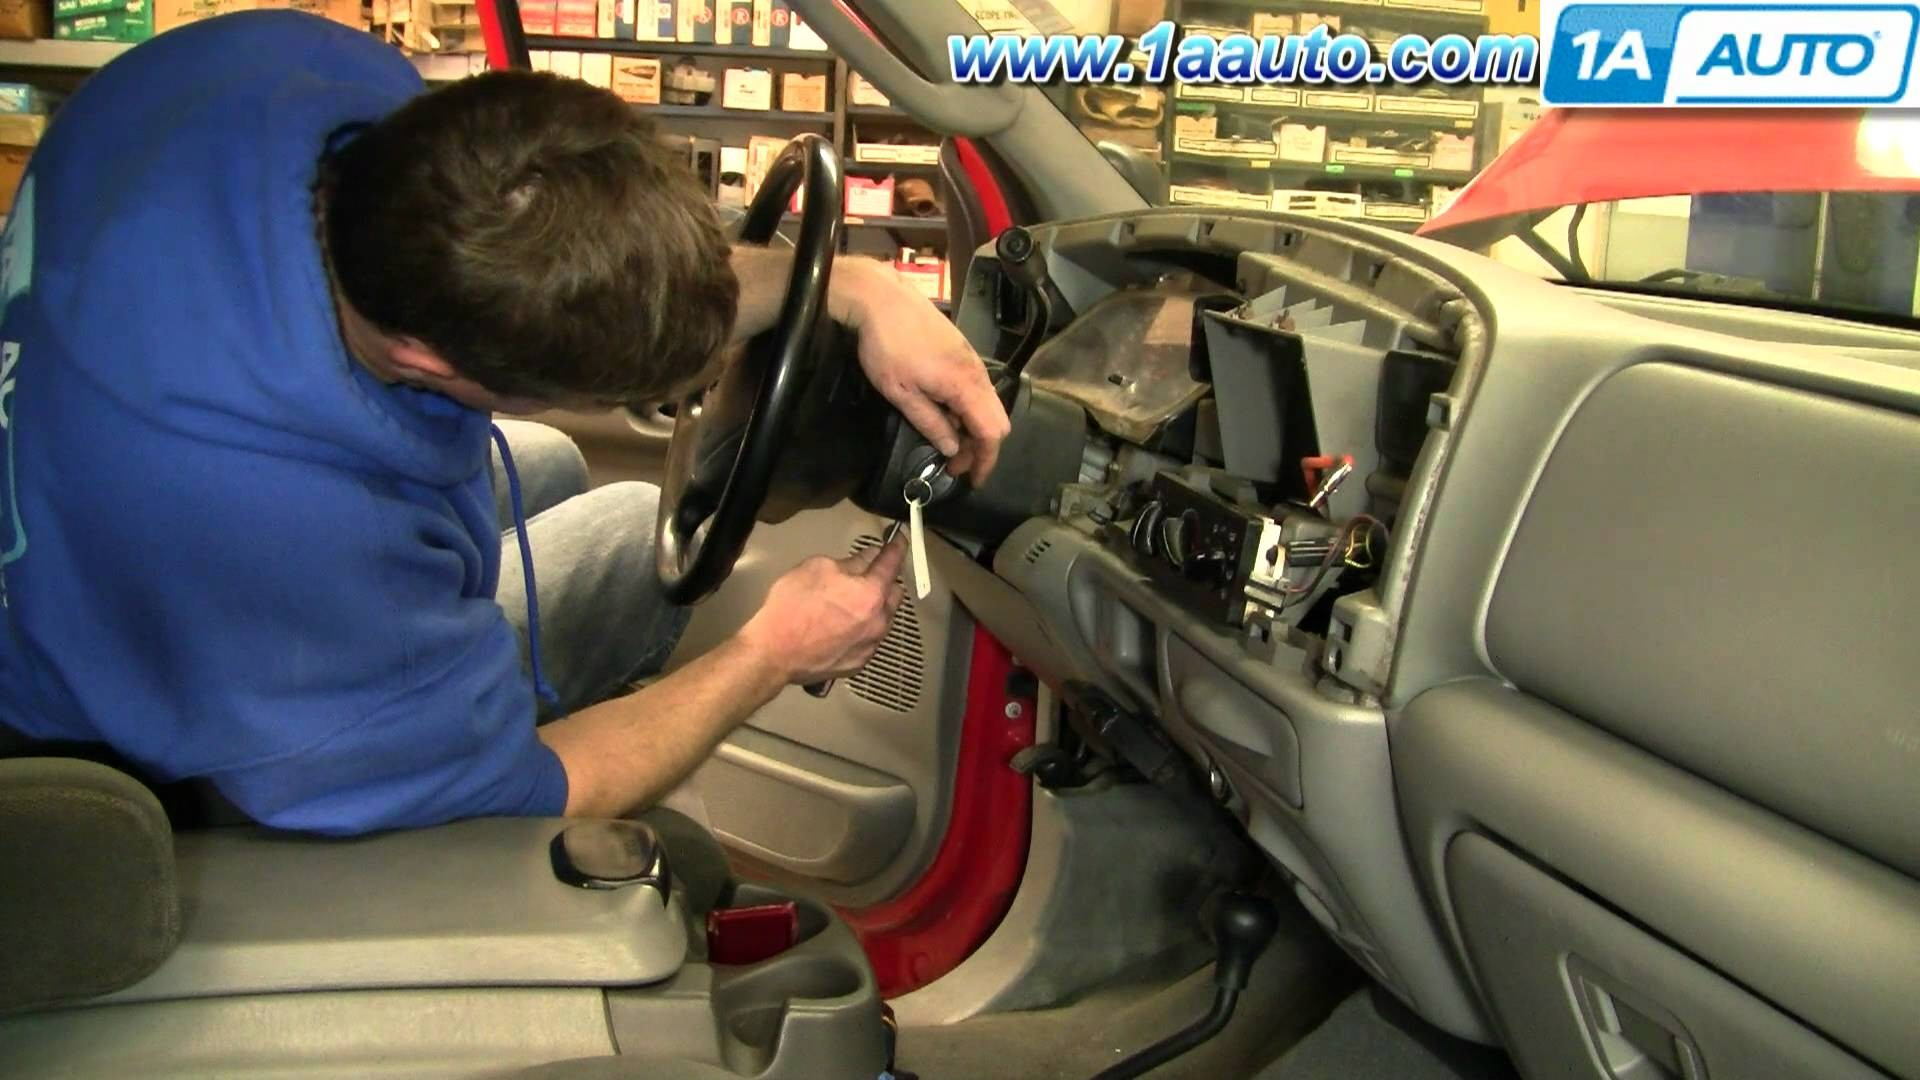 Ford Excursion Parts Diagram How to Install Replace Turn Signal Wiper Switch Stalk ford F250 Of Ford Excursion Parts Diagram